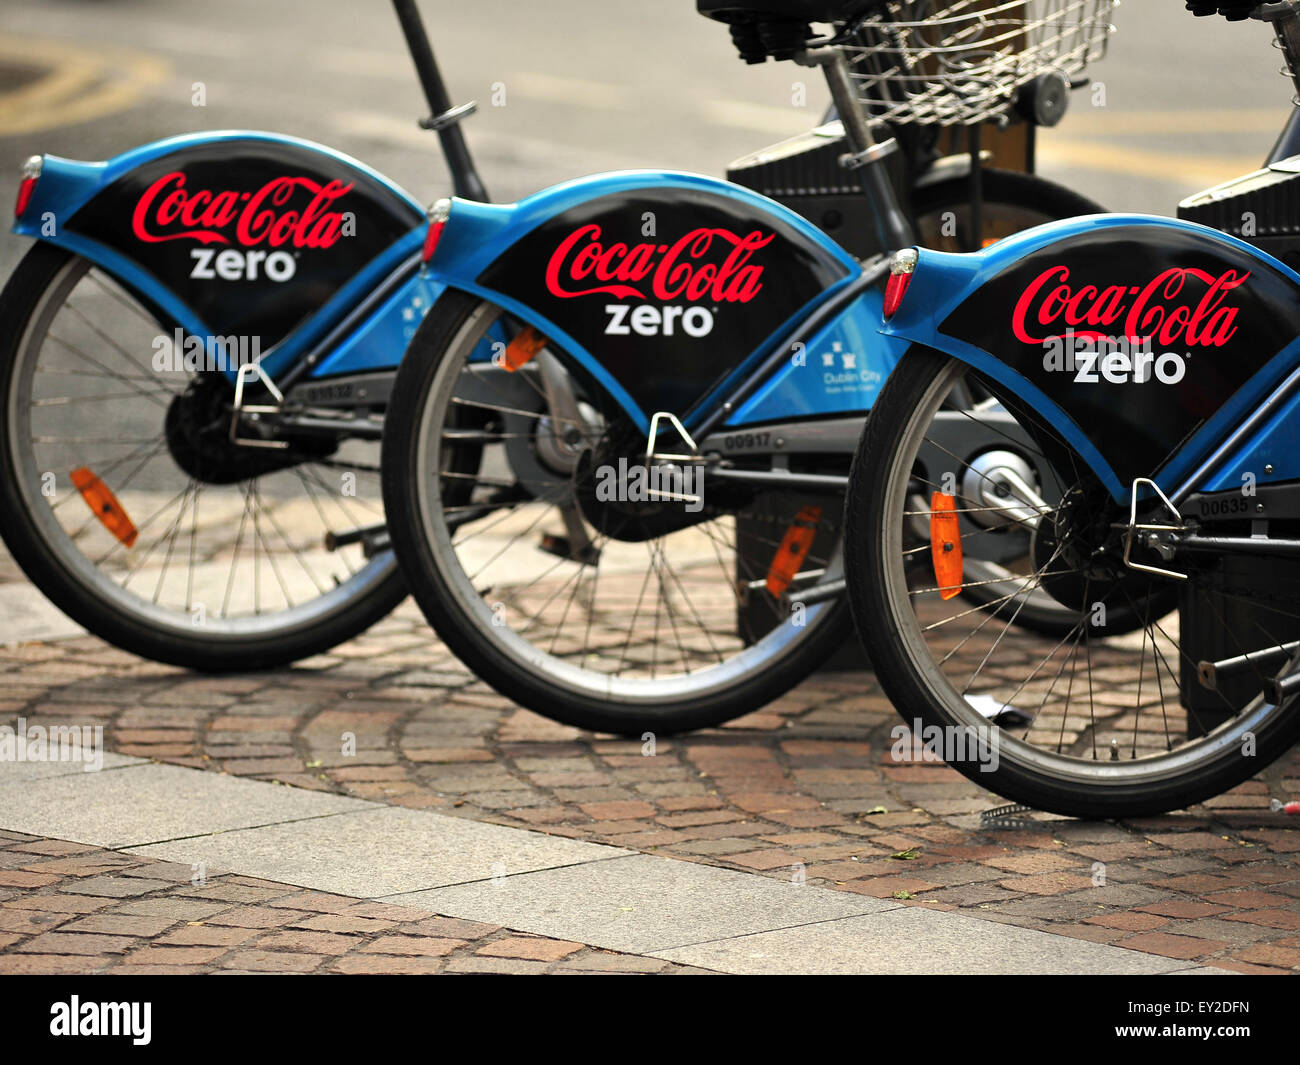 Dublin bicycles with Coco Cola sponsorship on them. - Stock Image